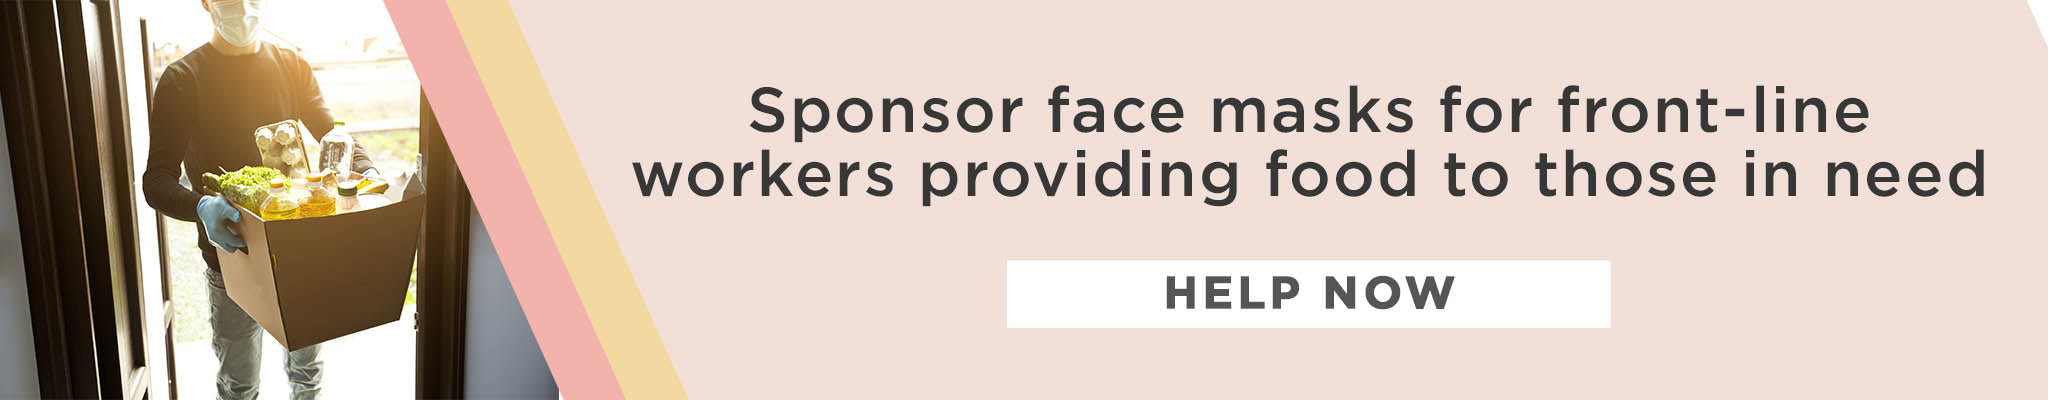 Sponsor face masks for front-line workers providing food to those in need | Help Today